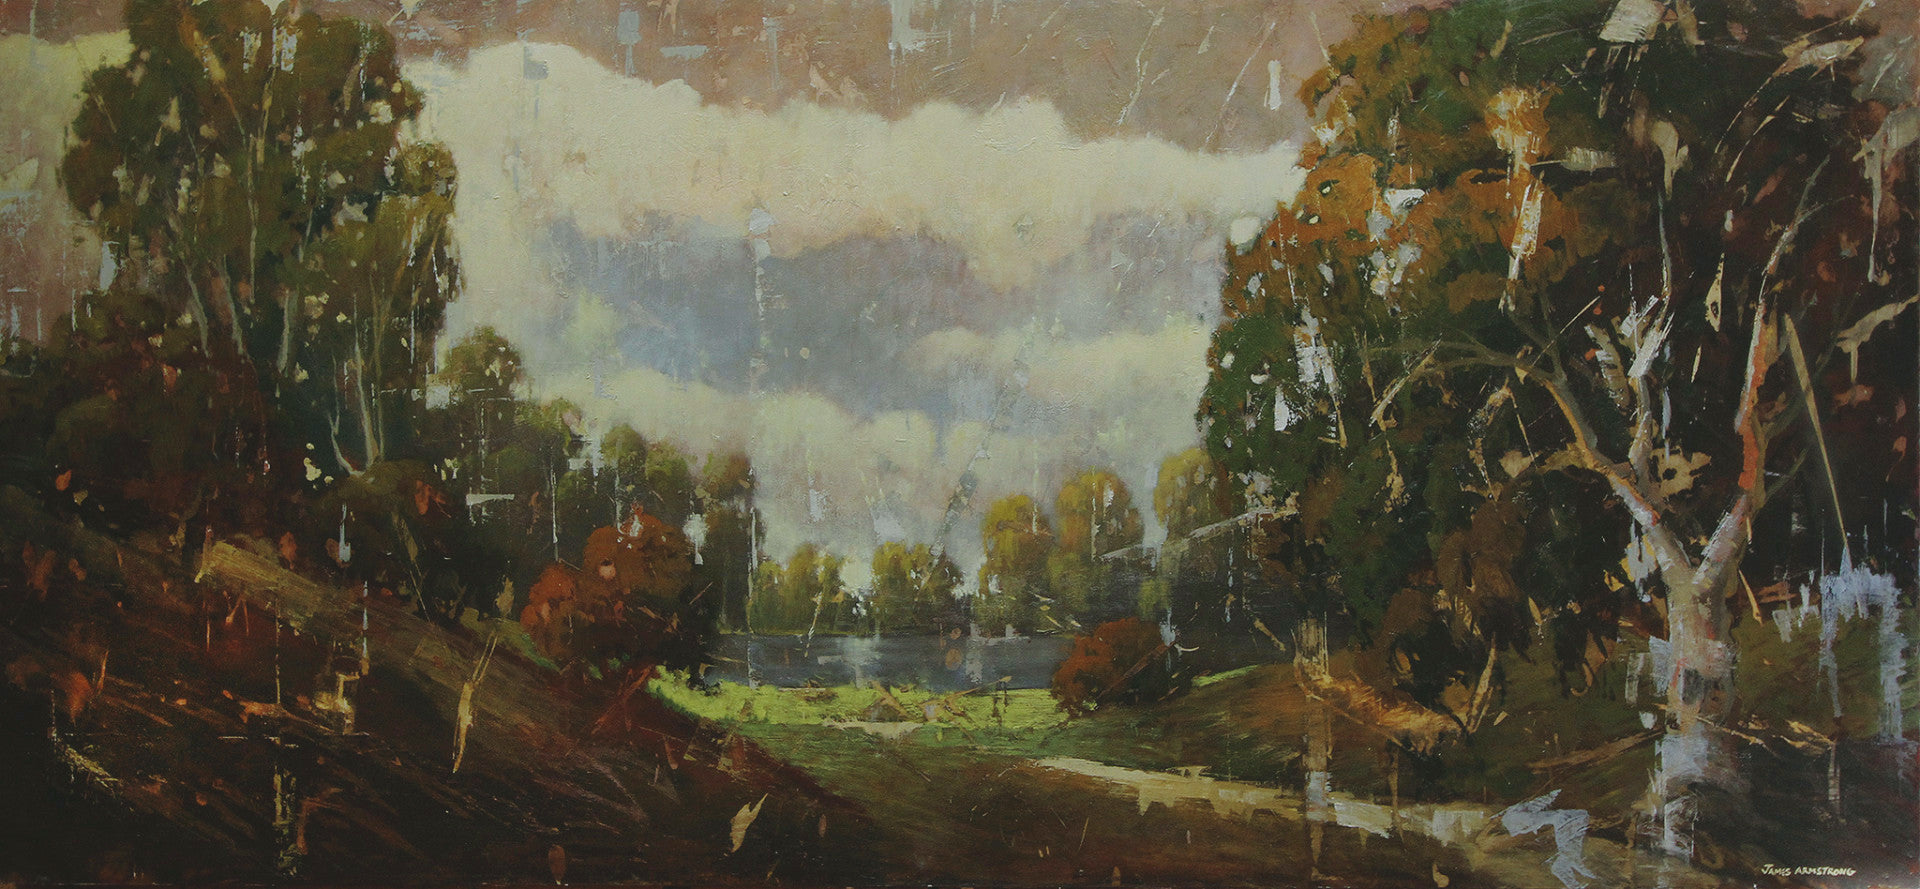 River Front Park - 36x80 Oil on Masonite Panel